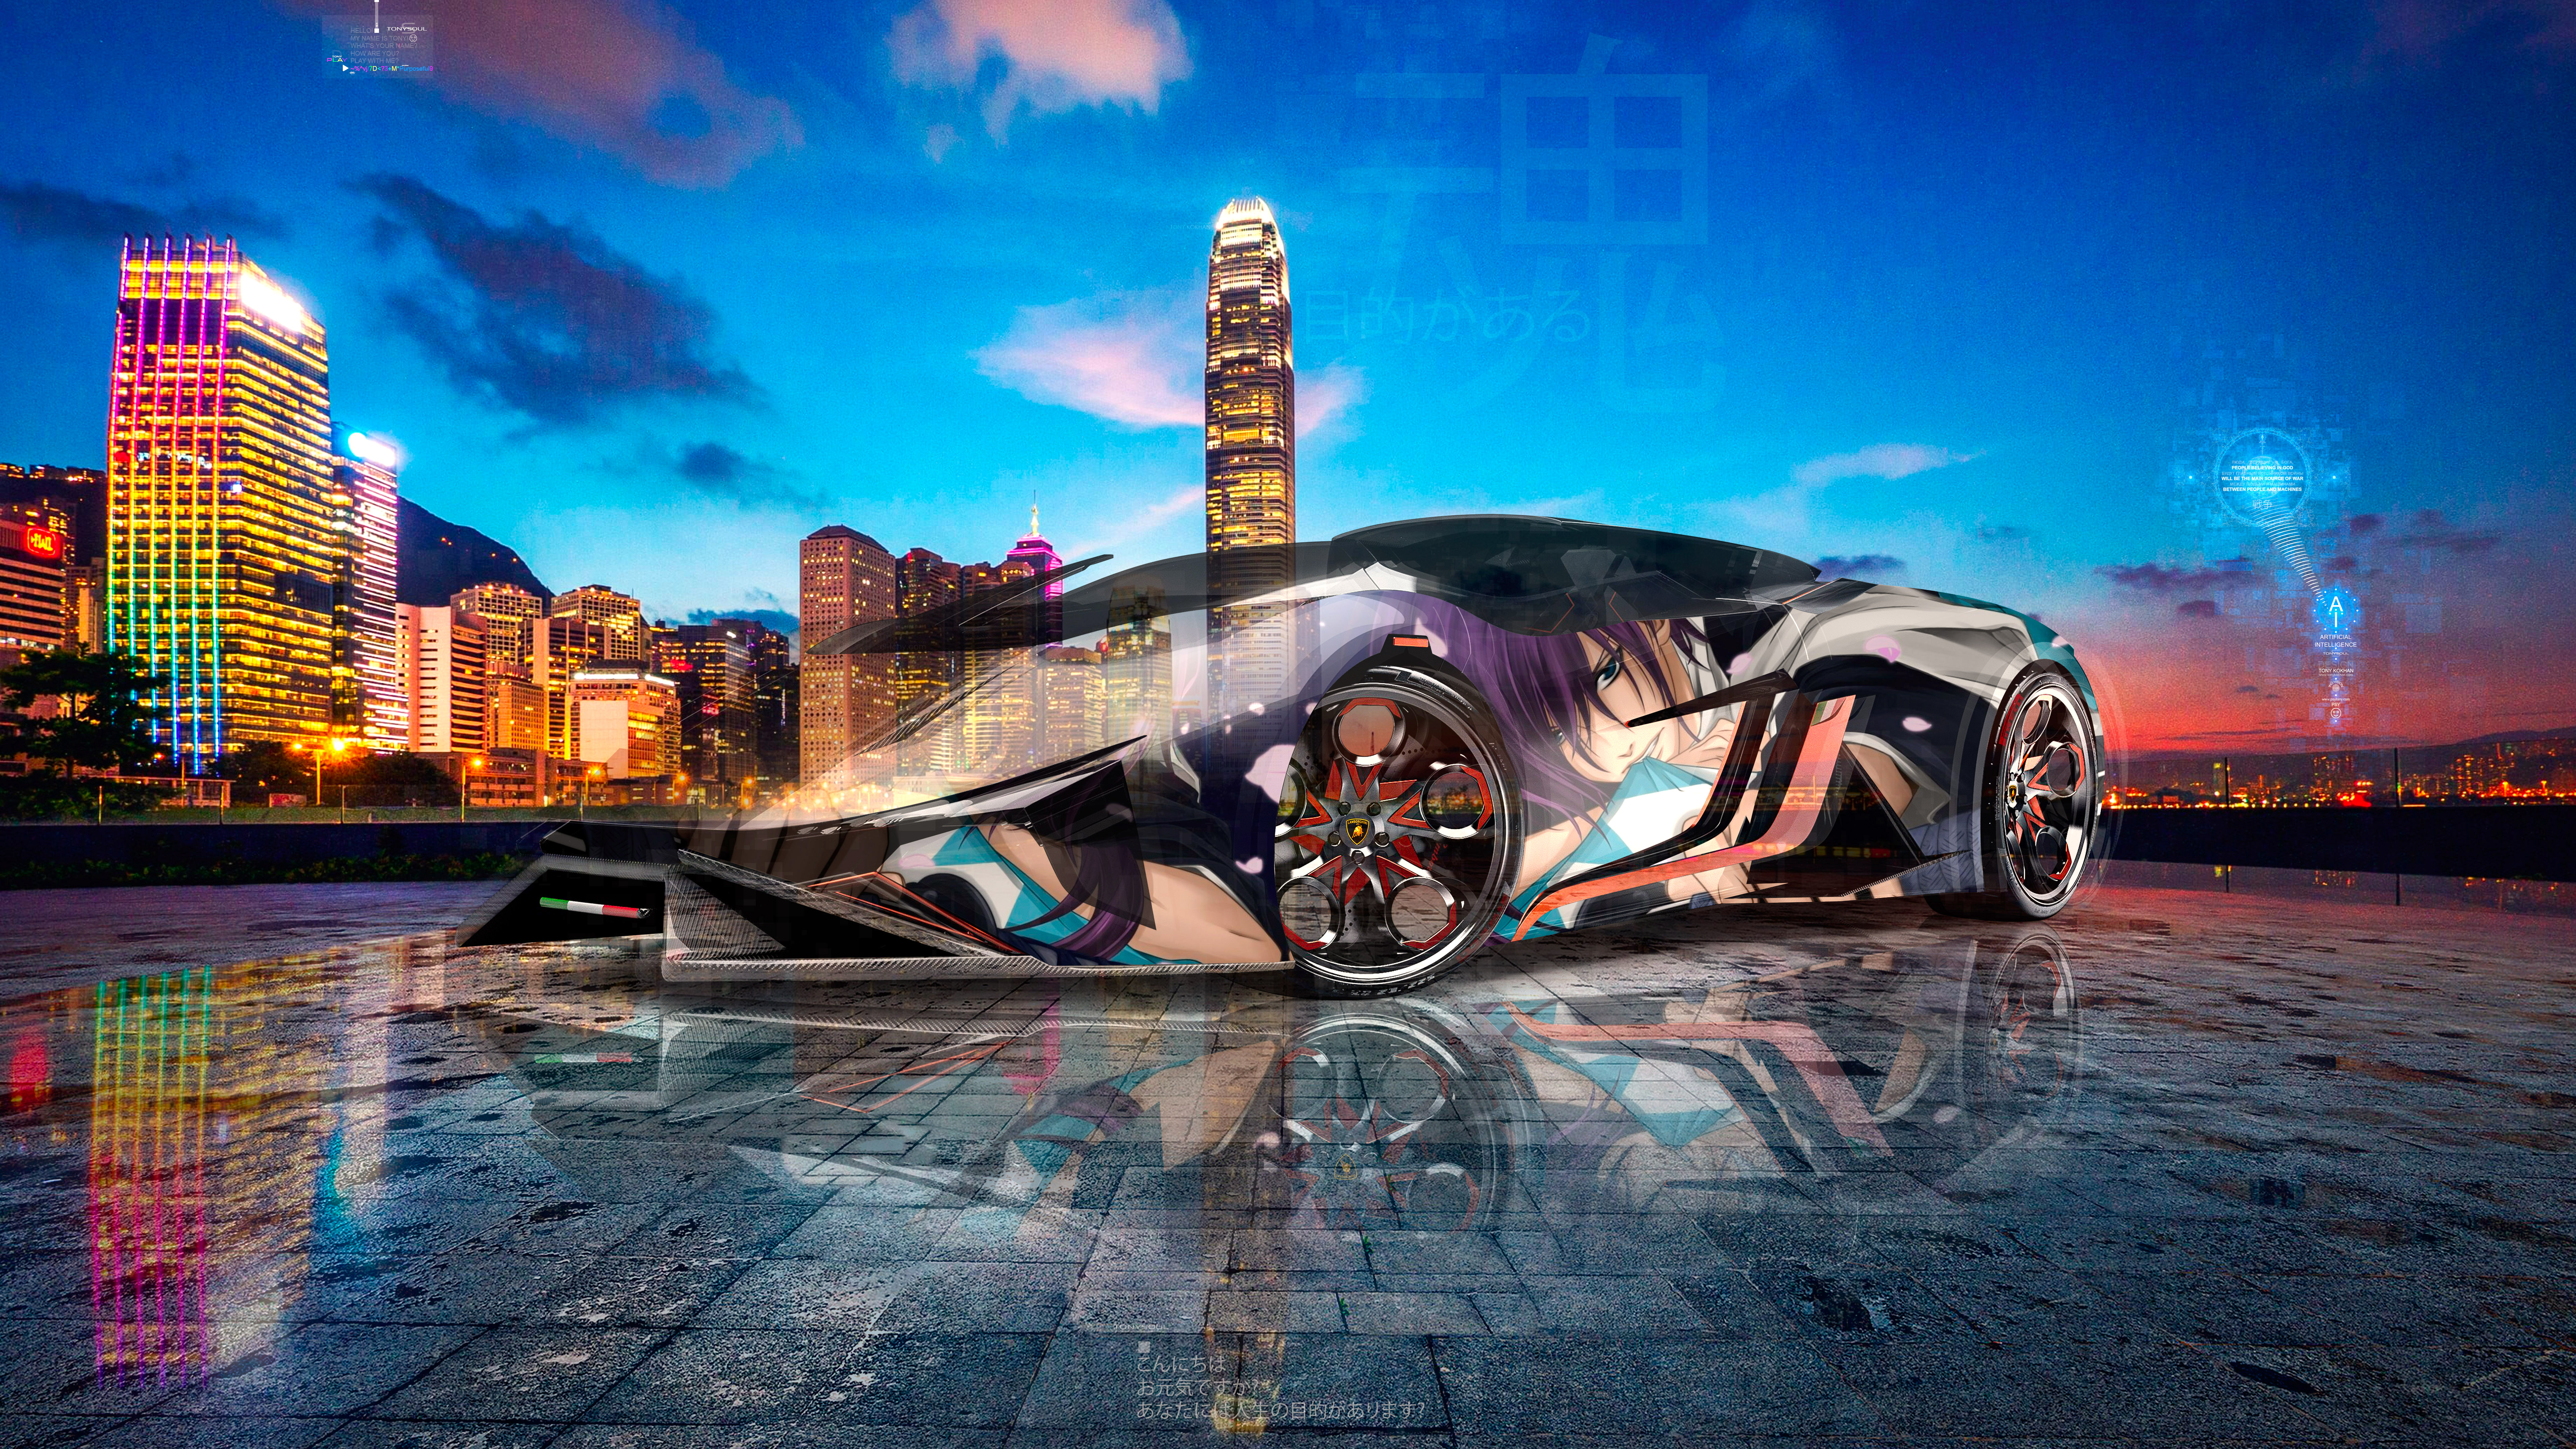 Lamborghini-Diamante-Super-Anime-Saito-Hajime-Fate-Crystal-Purposeful-Soul-Hong-Kong-China-Artificial-Intelligence-Car-2020-Multicolors-8K-Wallpapers-by-Tony-Kokhan-www.el-tony.com-image